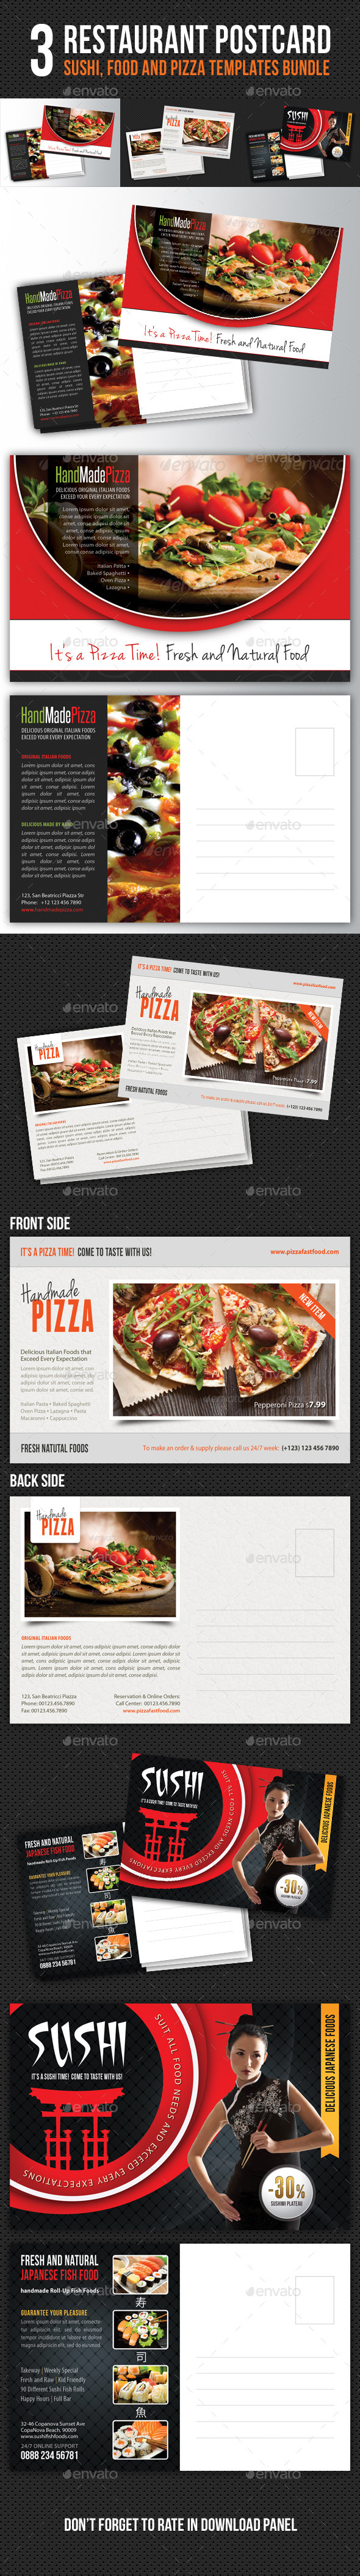 3 in 1 Restaurant Food Postcard Bundle - Cards & Invites Print Templates